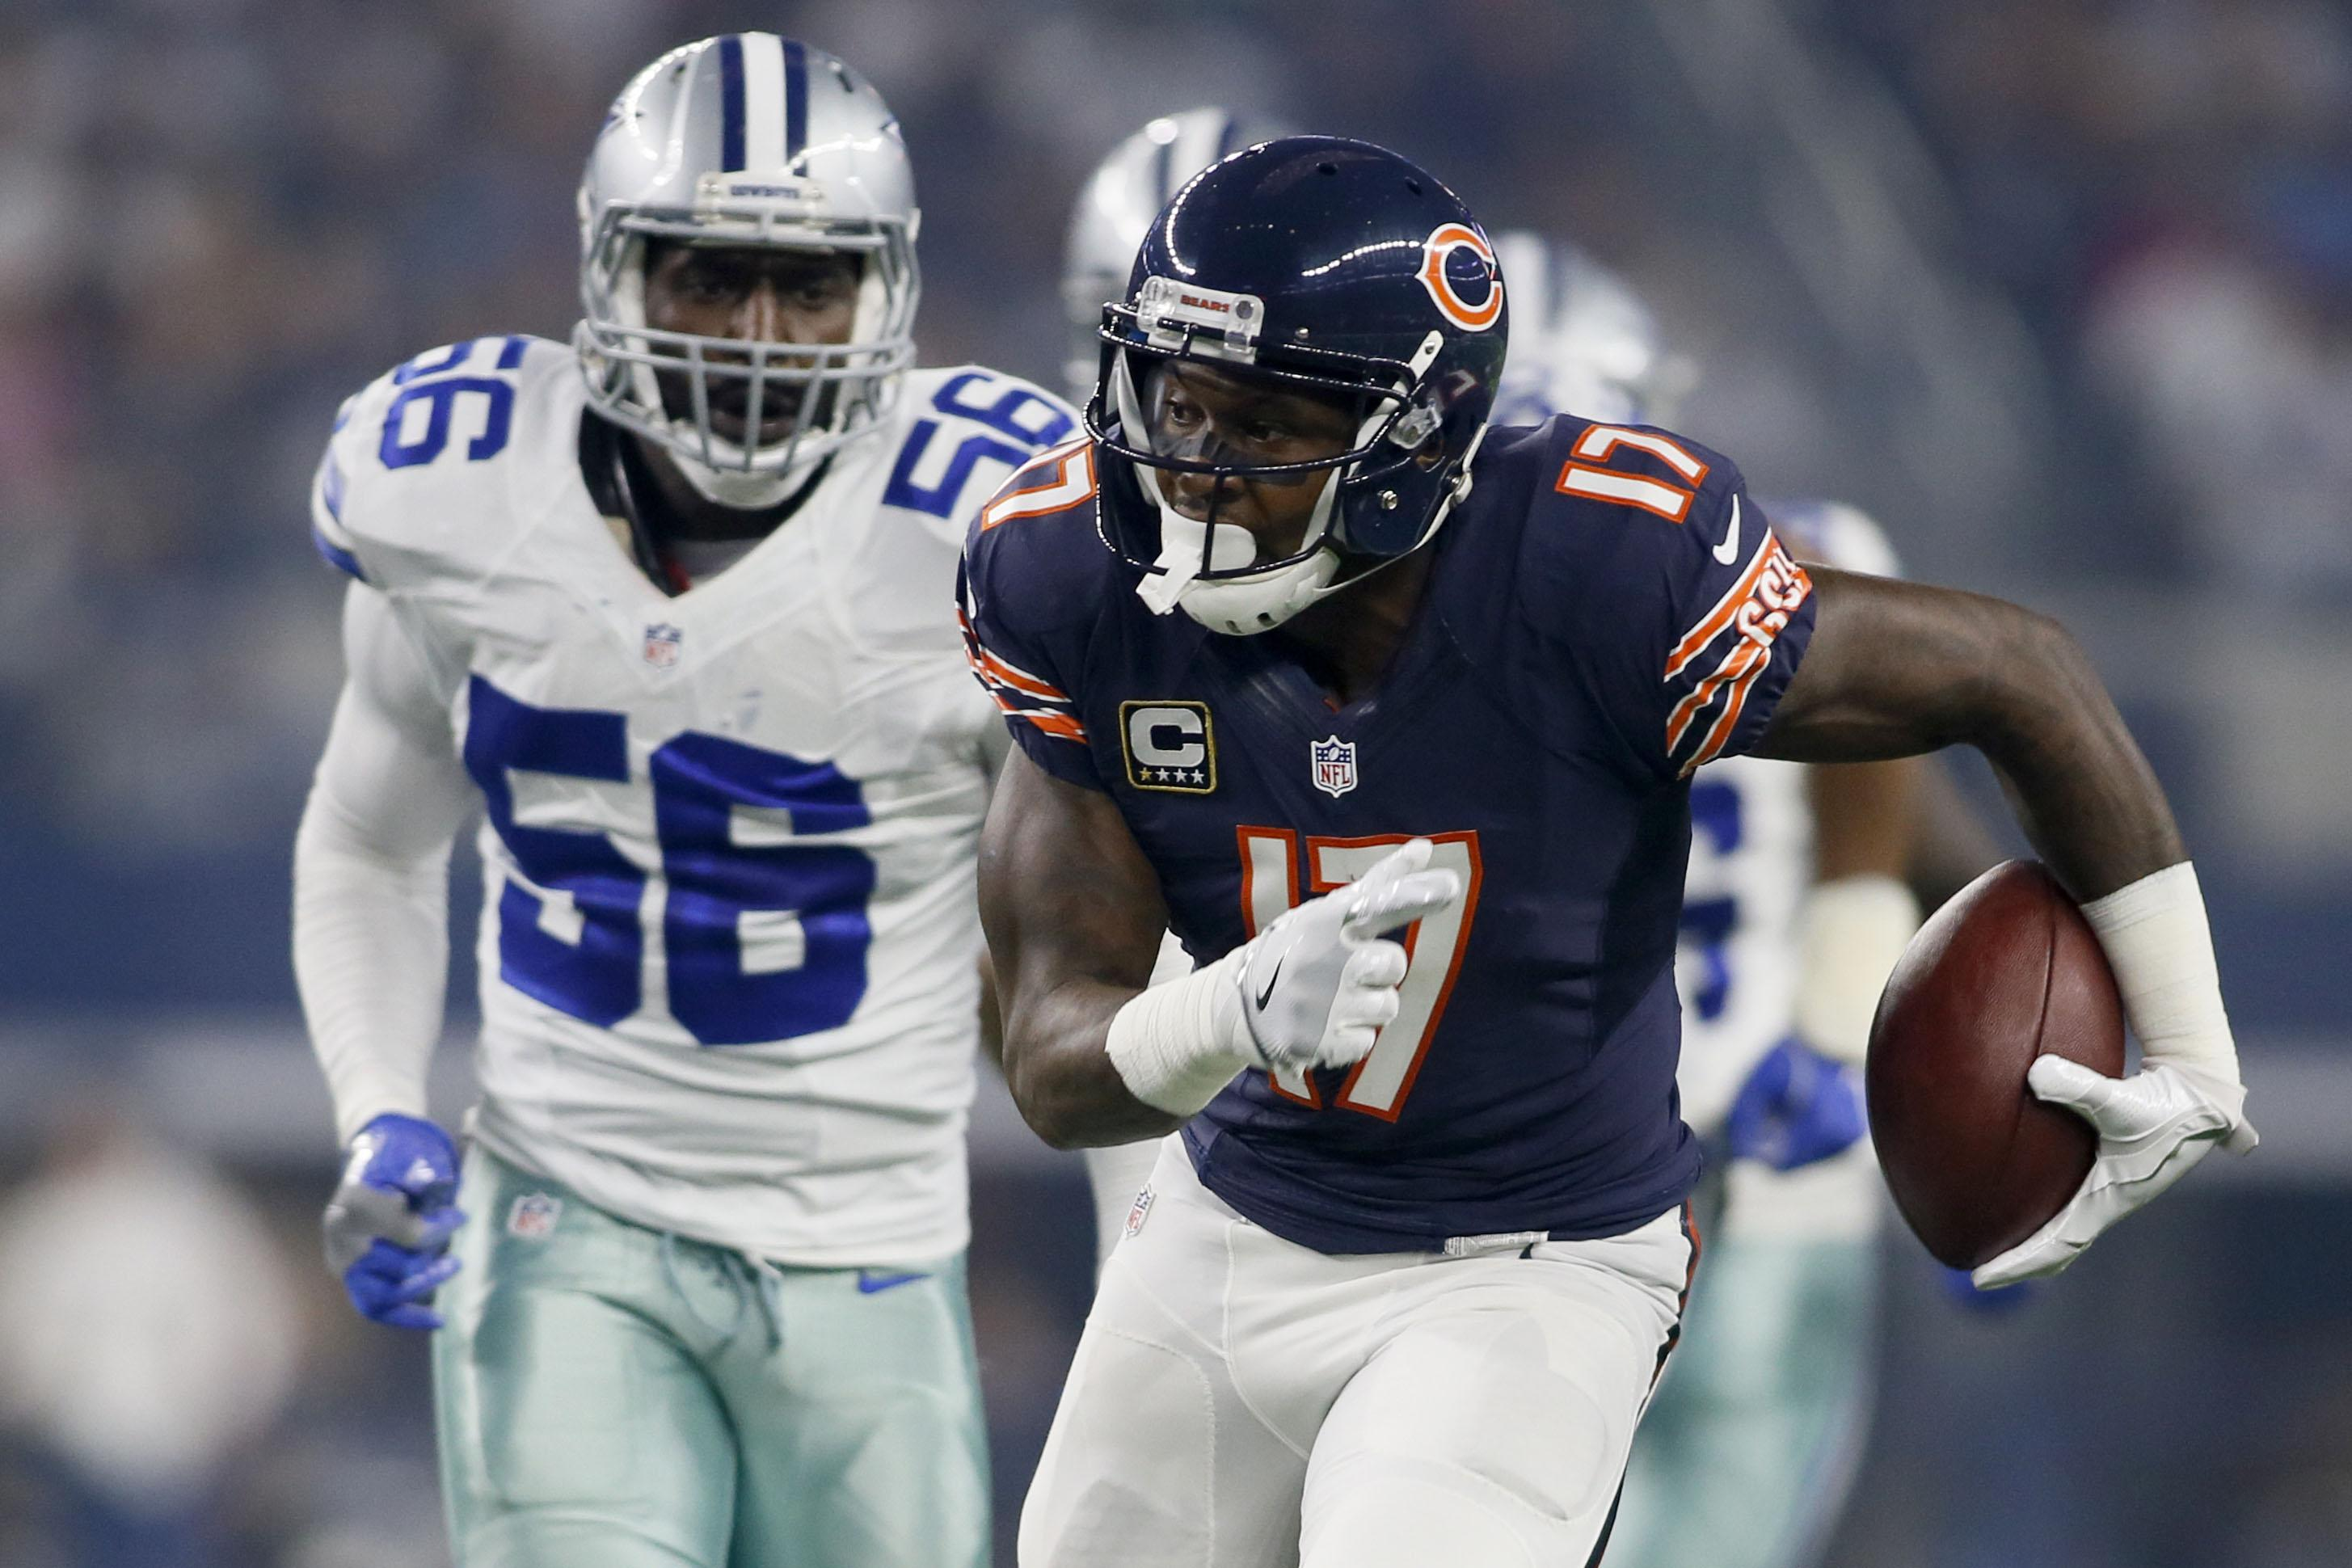 Former Bears receiver Jeffery signs 1-year, $14M deal with Eagles